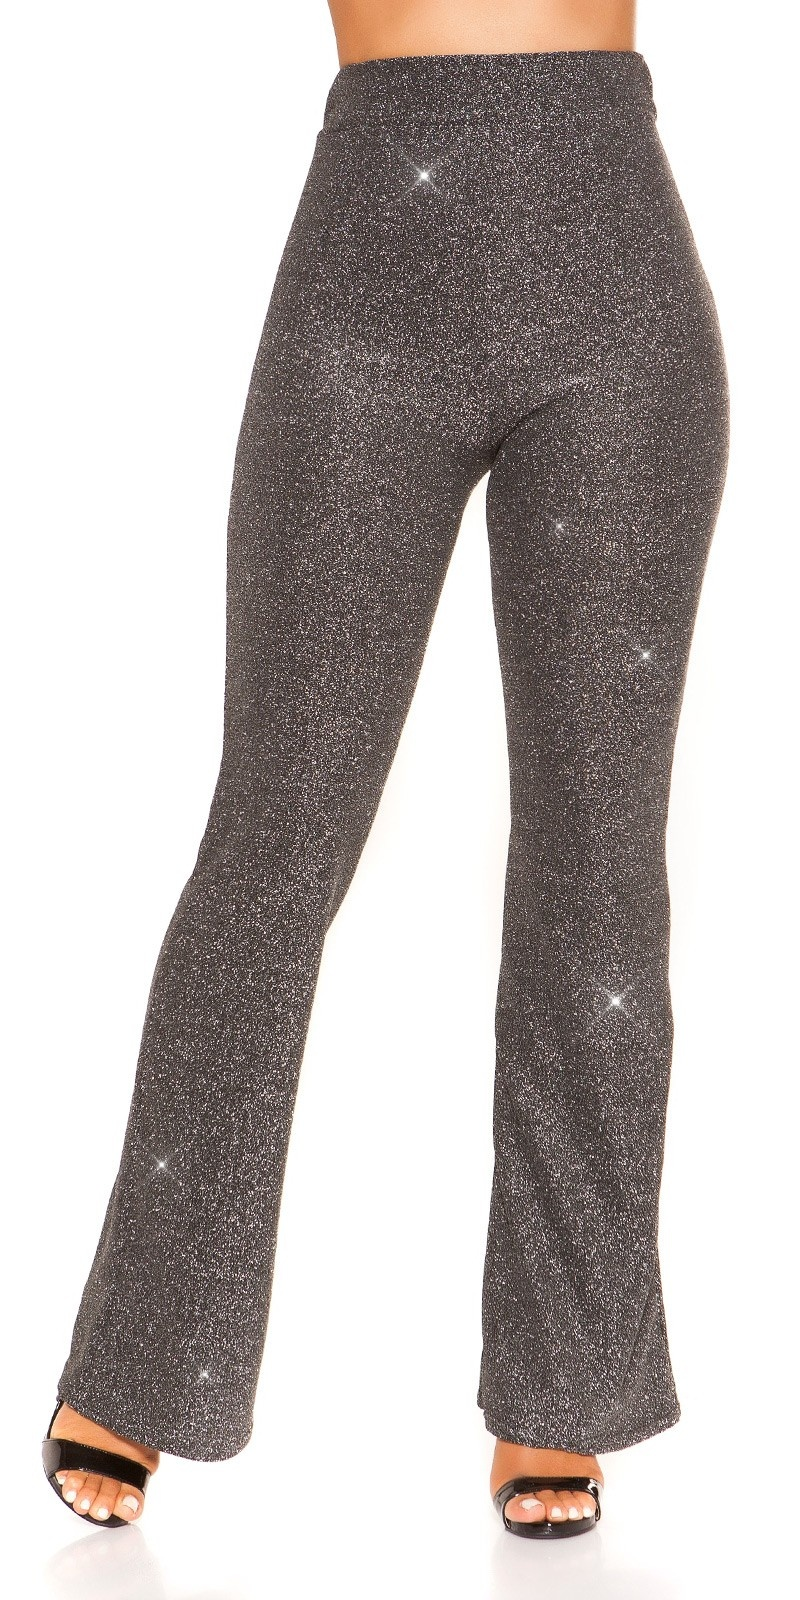 Sexy LeT S PArTY glitter pants Silver